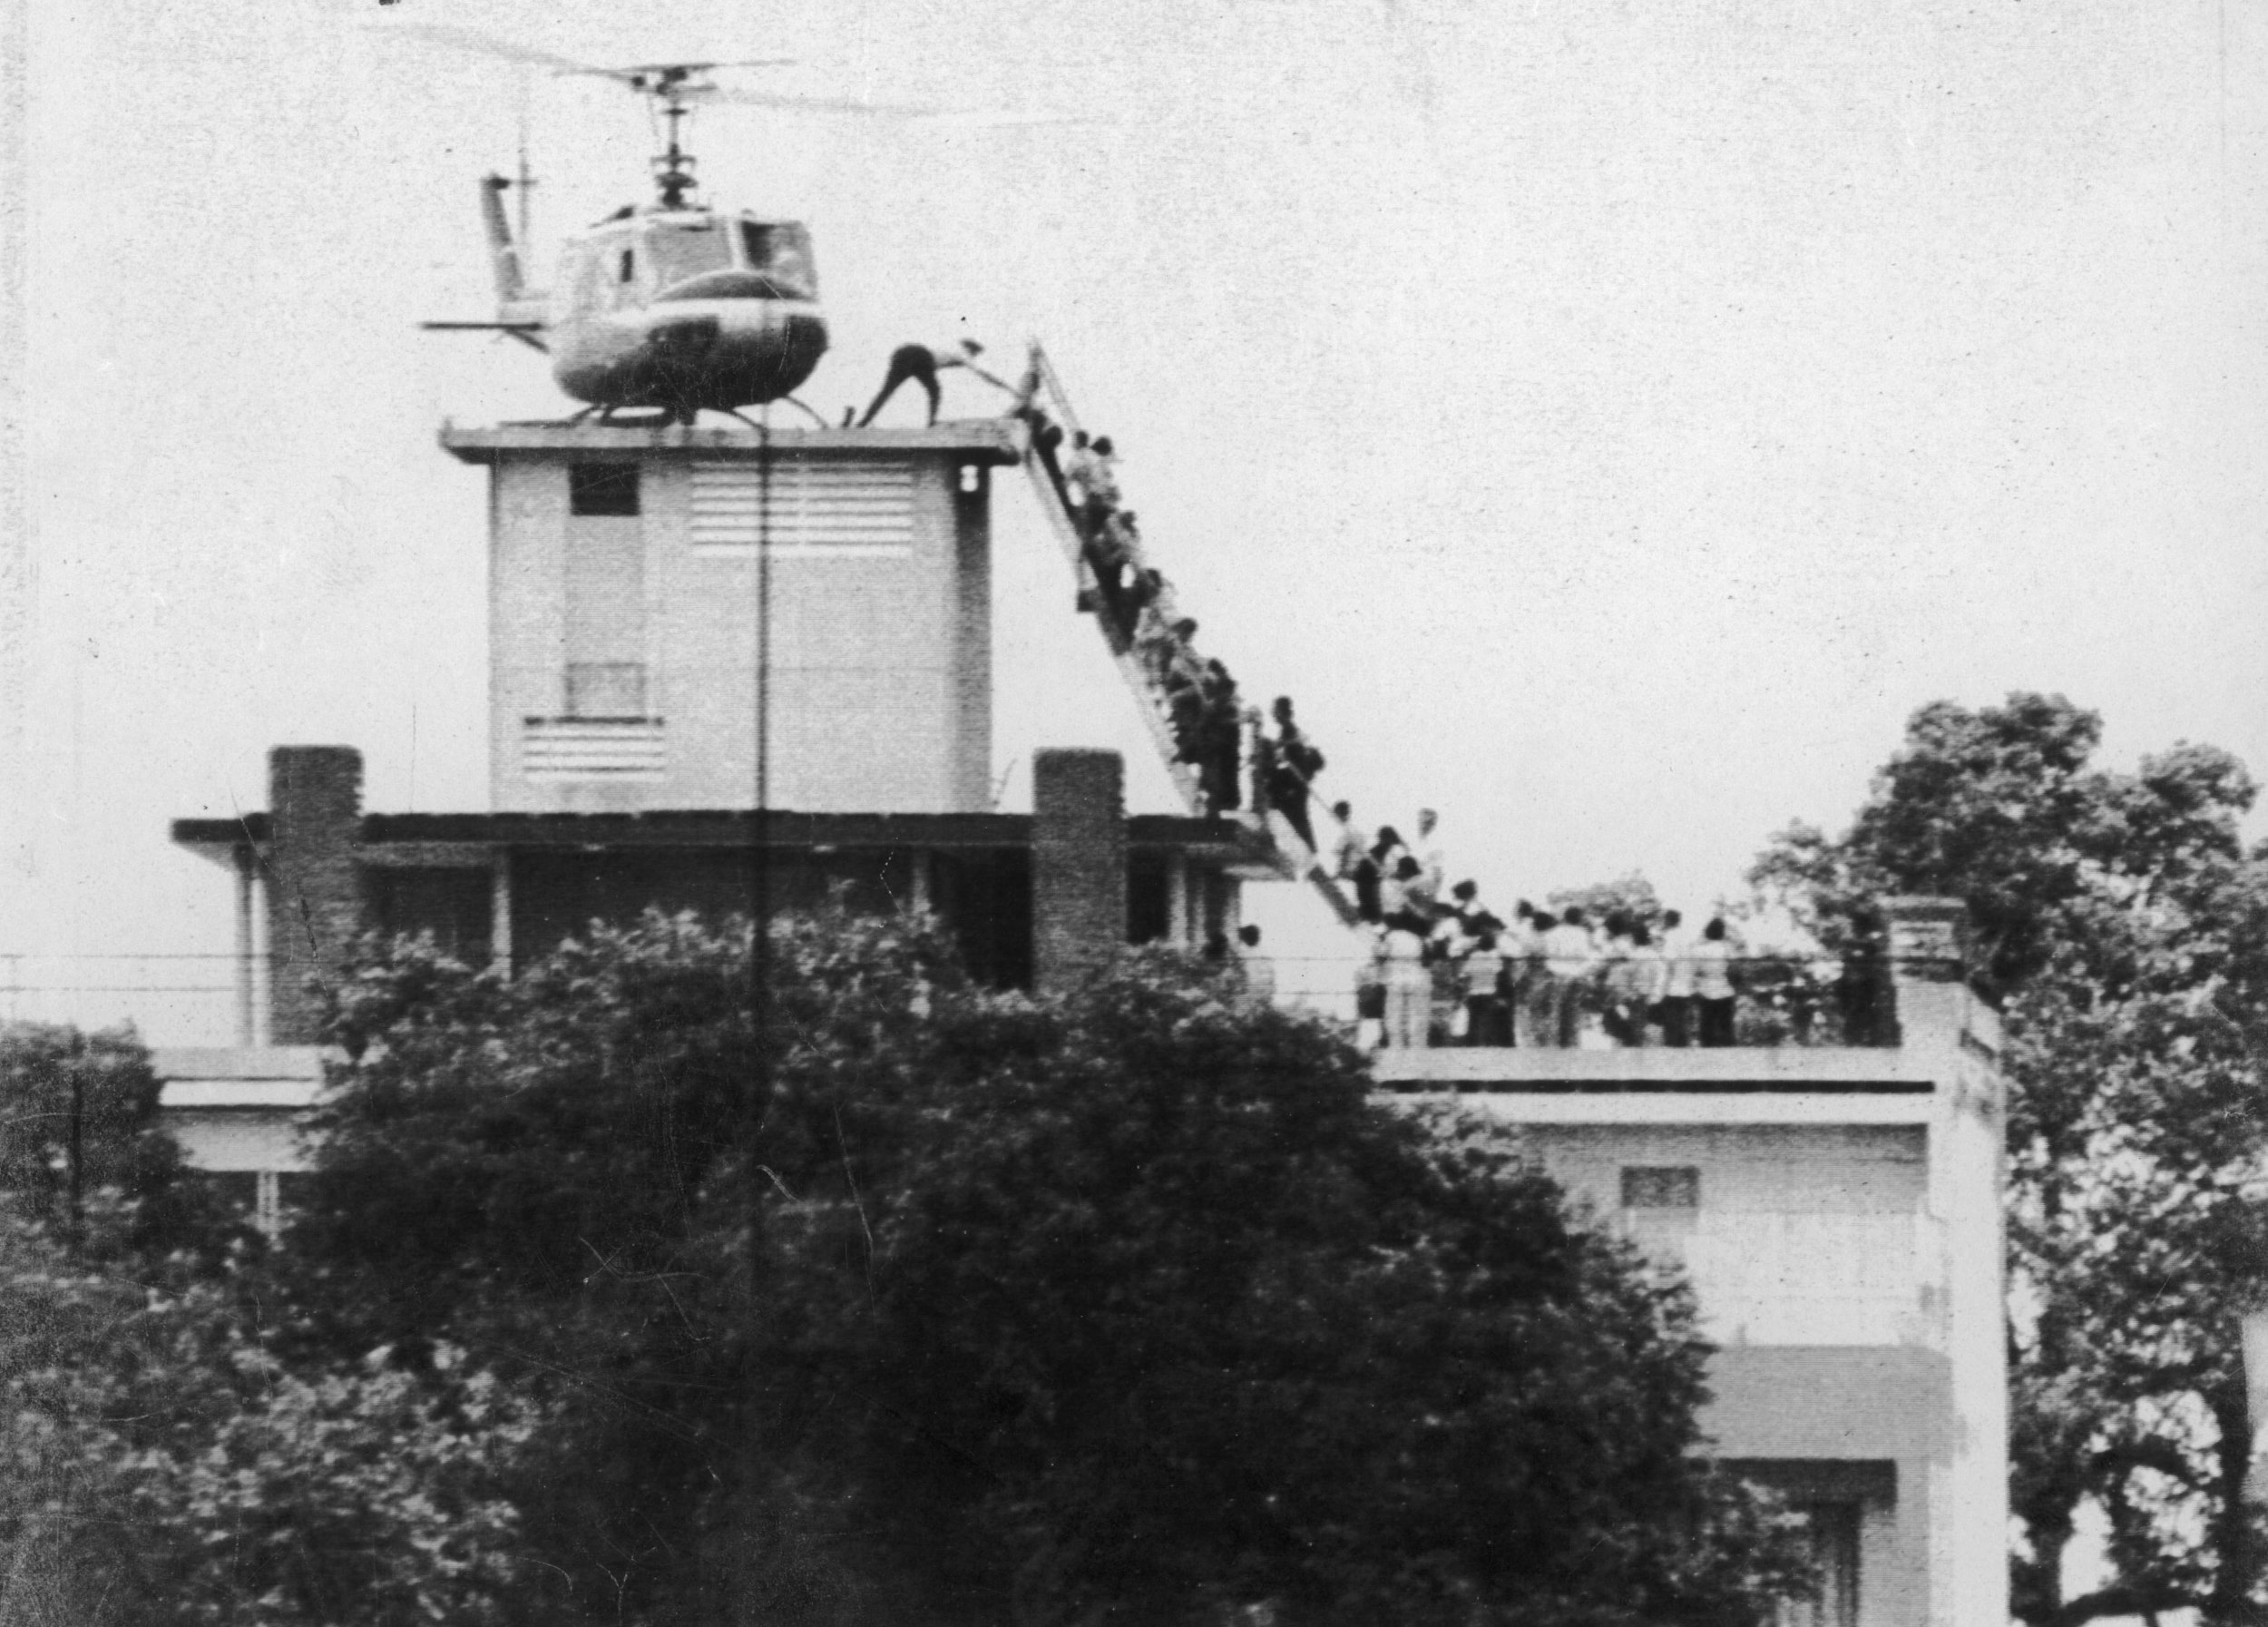 Hugh Van Es, 29th April, 1974; An Air America helicopter crew member helps evacuate people from the roof of the American Embassy, Saigon. Part of operation 'Frequent Wind', the helicopter evacuation of over 1,000 Americans and 5,000 Vietnamese from the city.